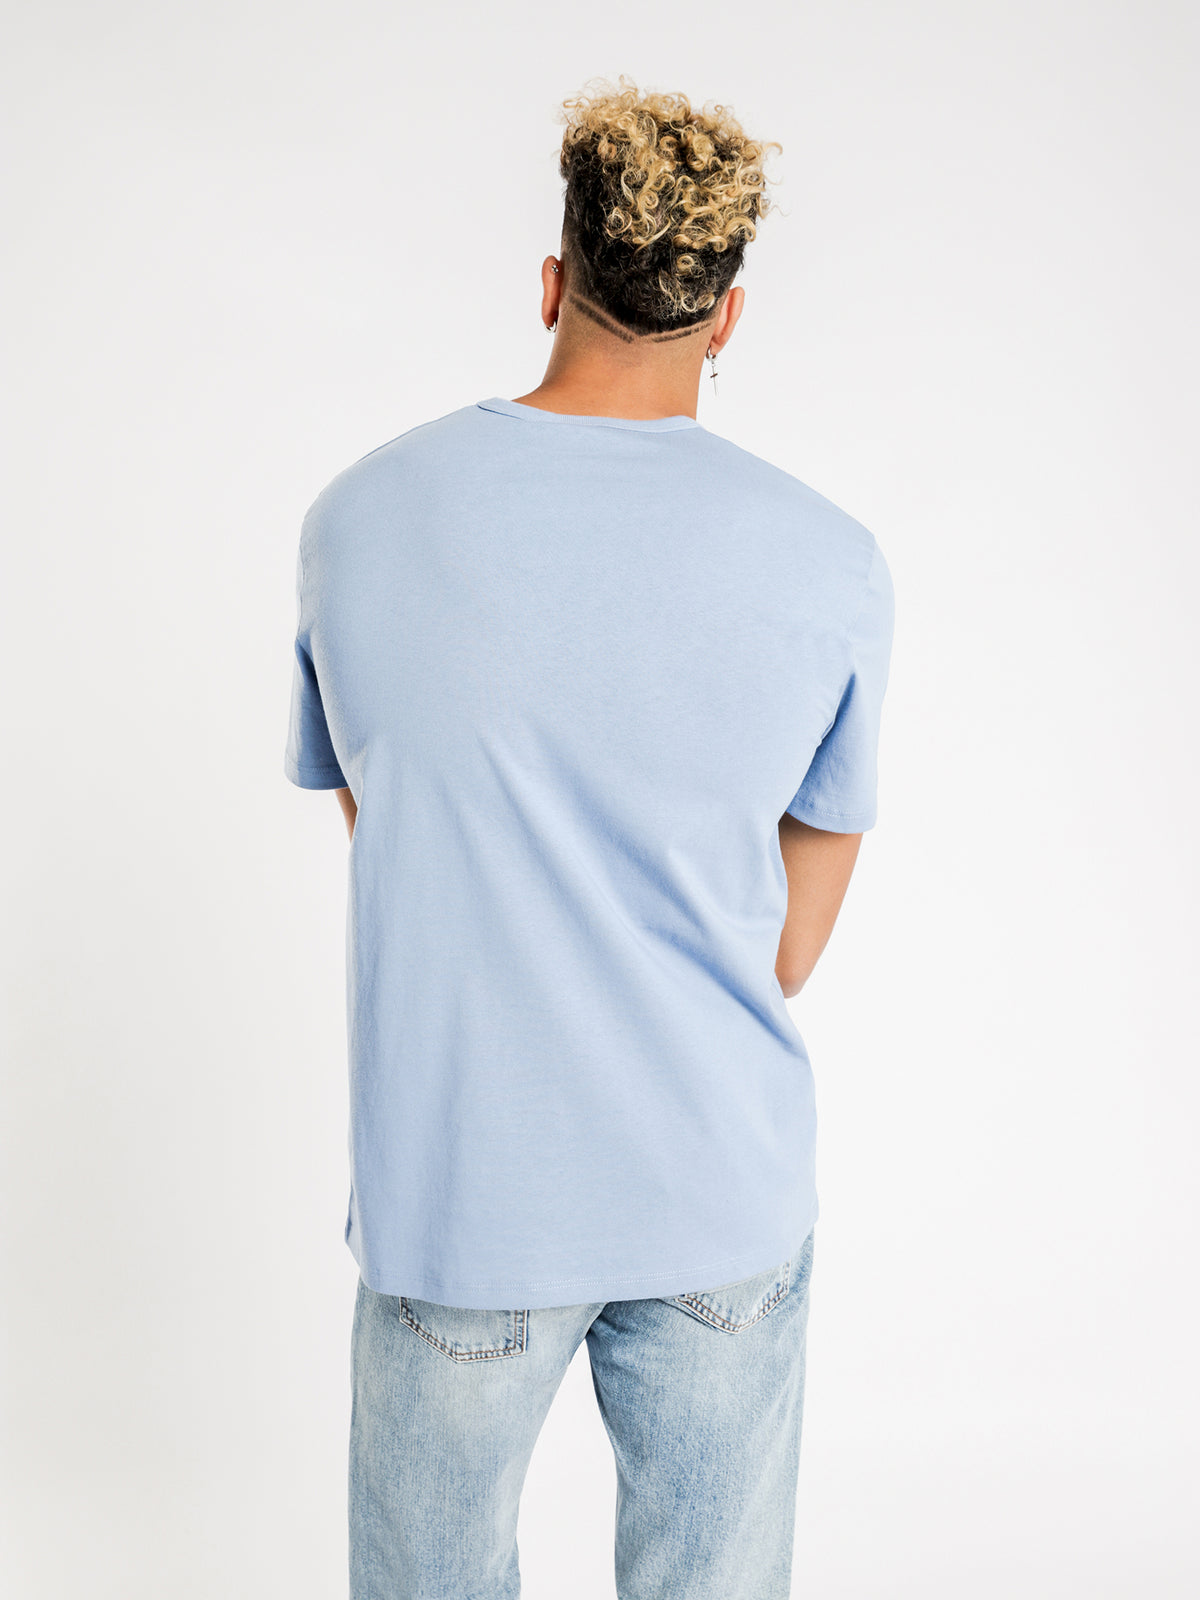 Heritage T-Shirt in Frontier Blue